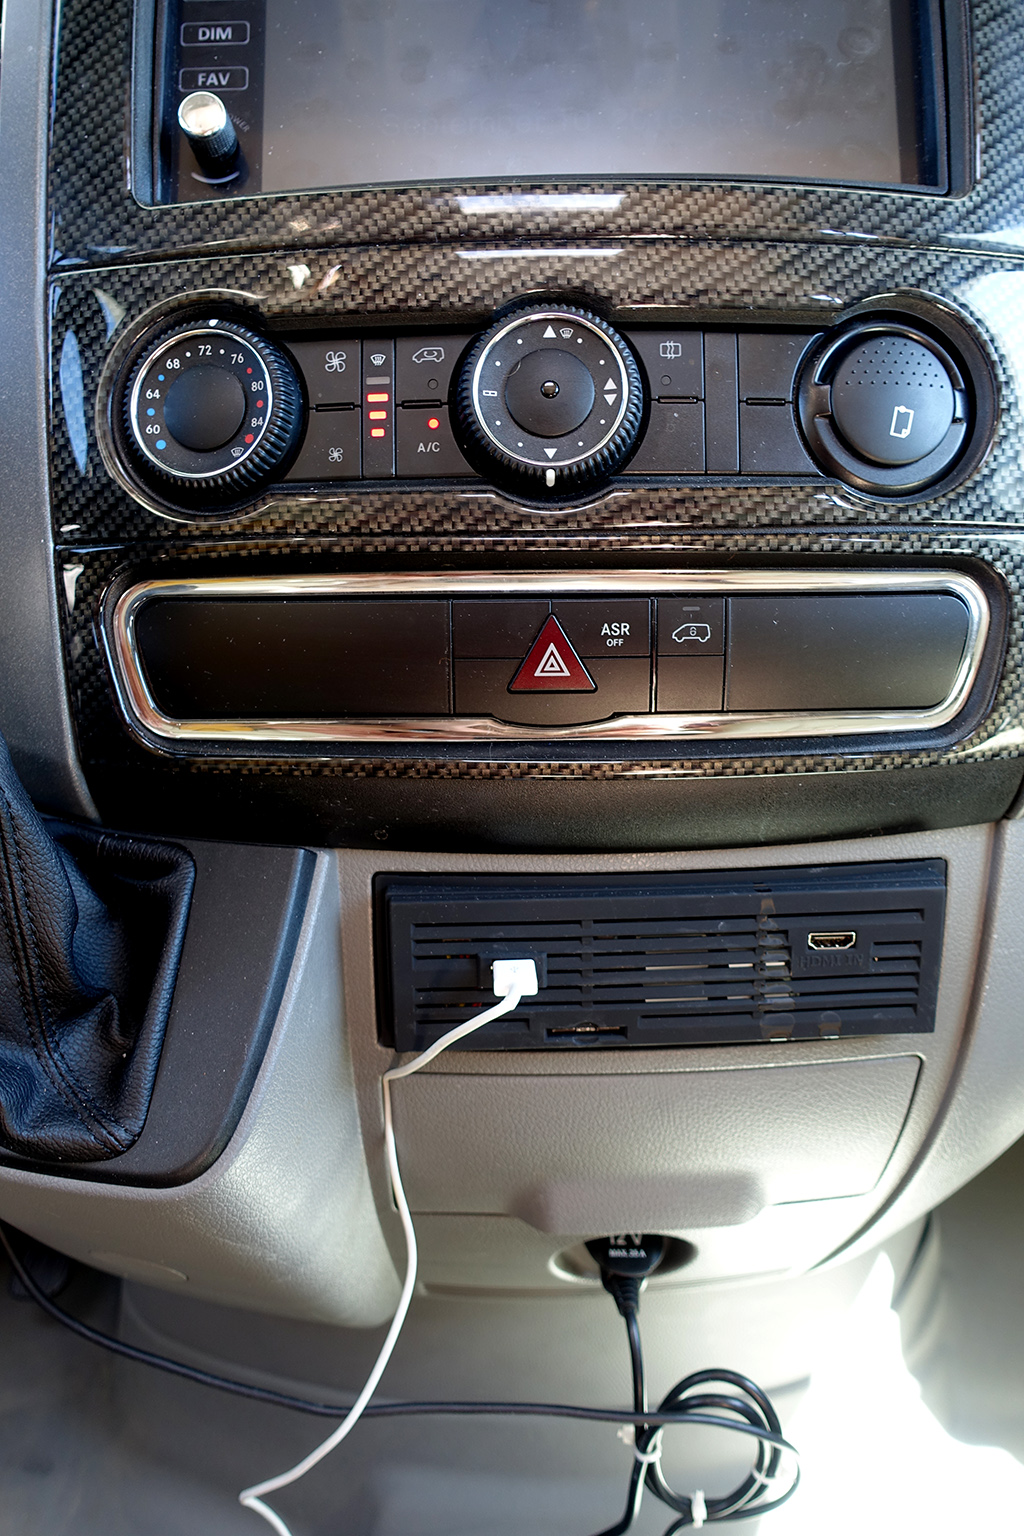 Air controls and plug ins on front dash.